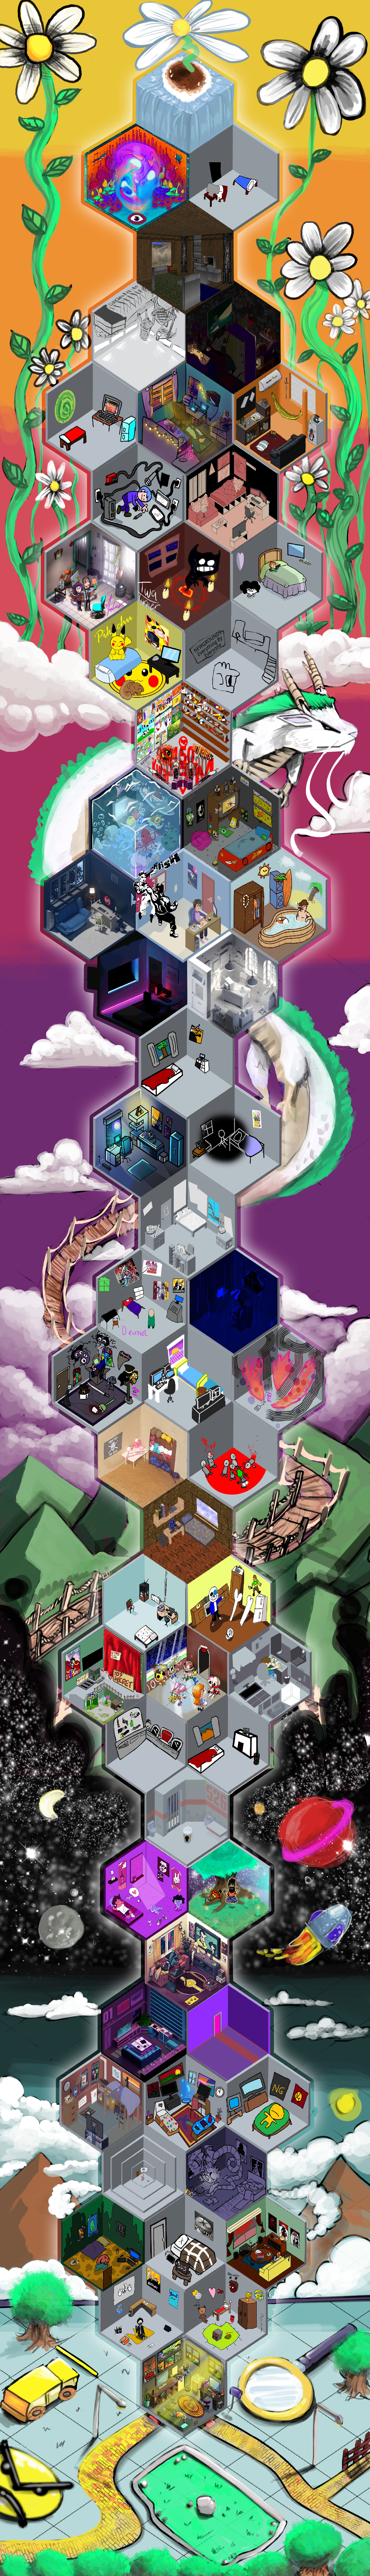 Isometric Collab Poster